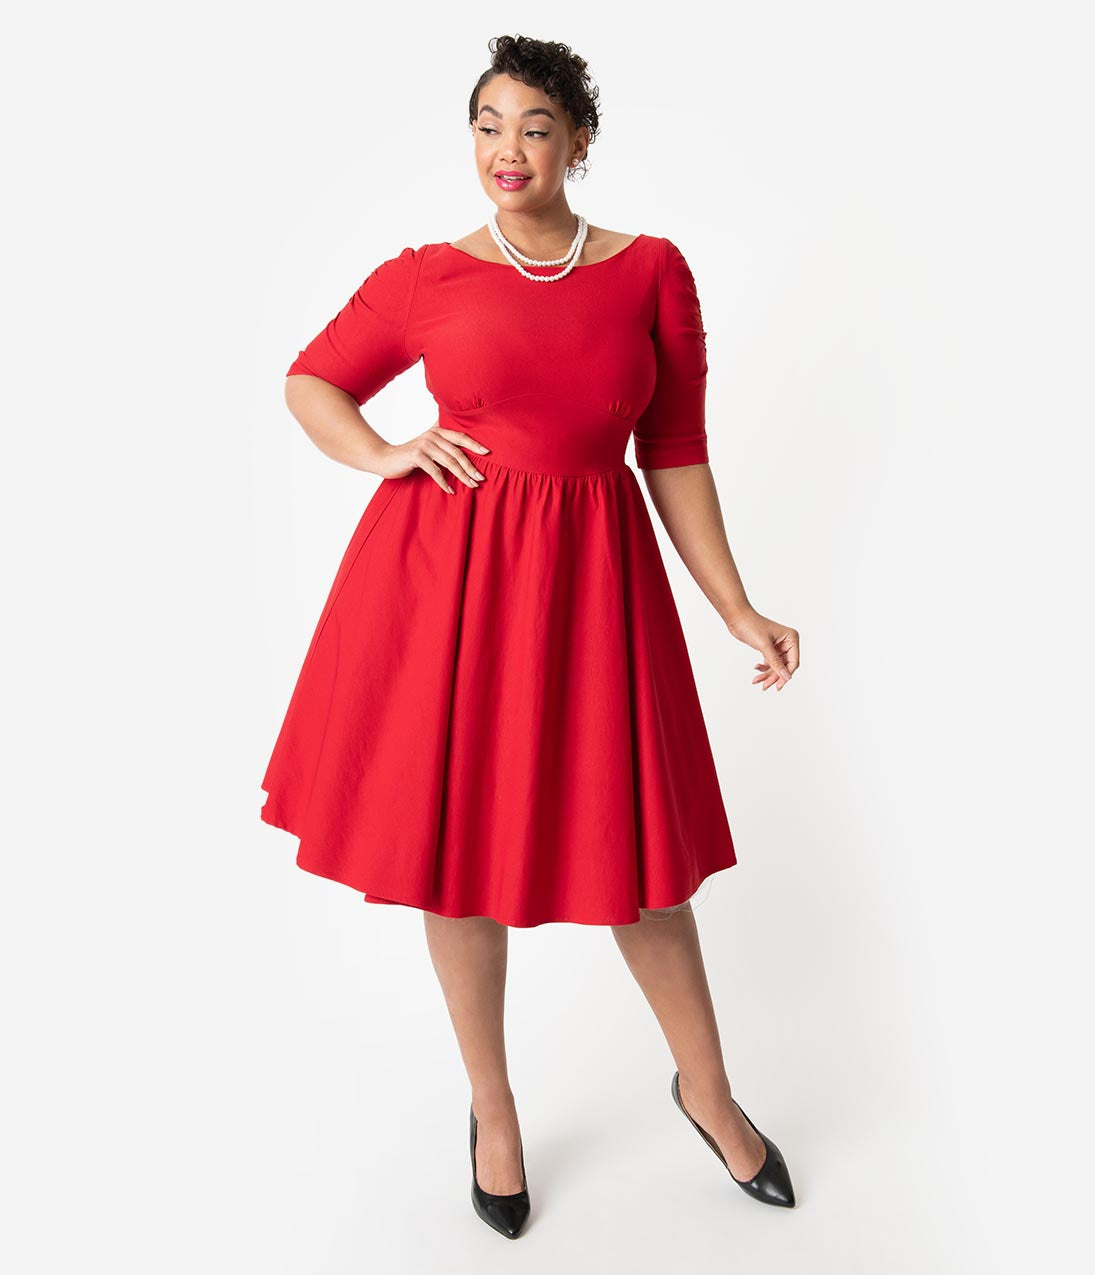 1950s Dresses, 50s Dresses | 1950s Style Dresses Stop Staring Plus Size 1950S Style Red Stretch Sleeved October Swing Dress $178.00 AT vintagedancer.com